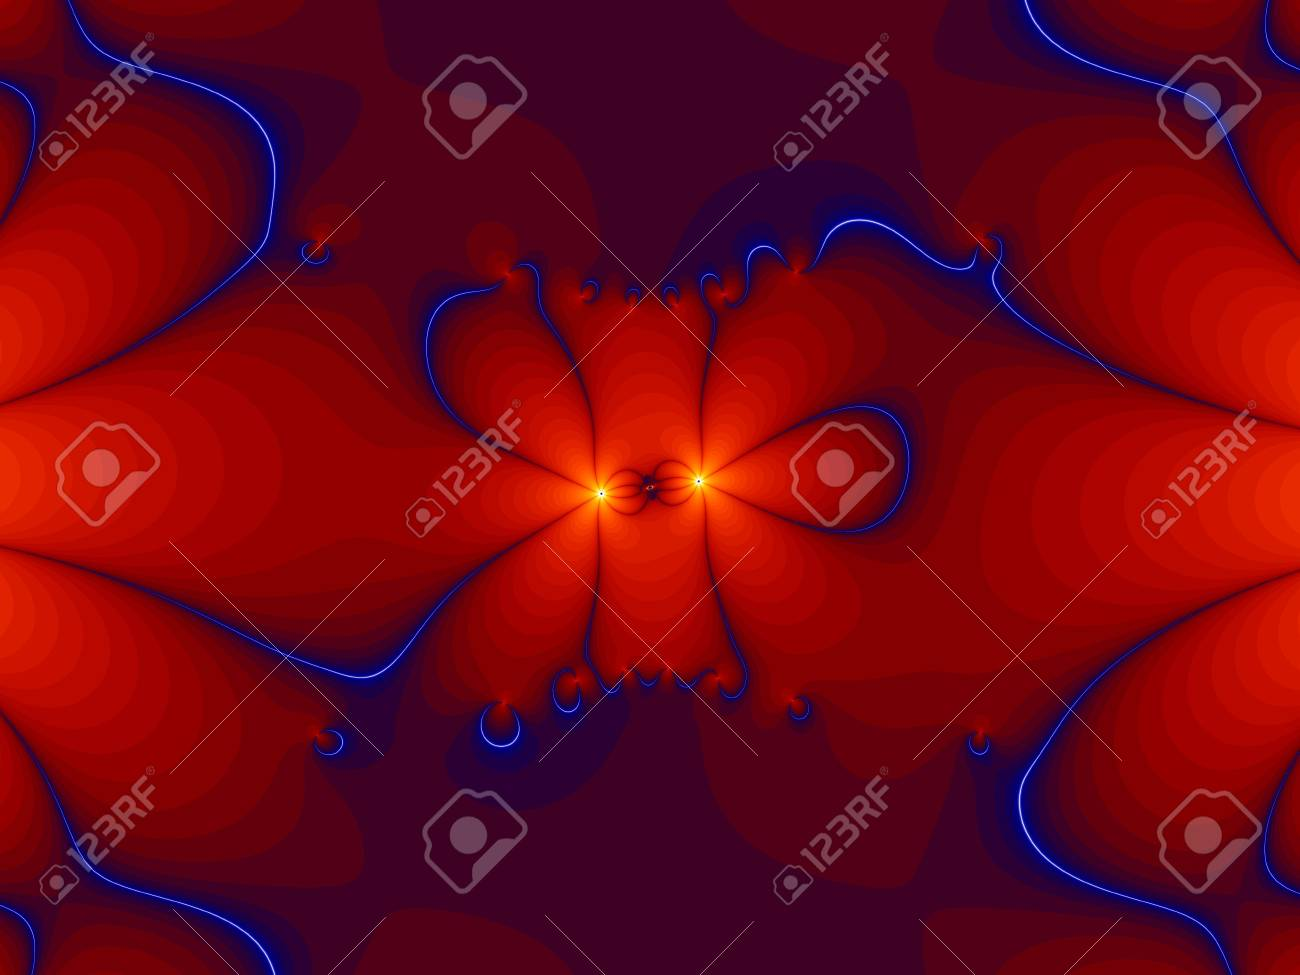 two lights on red background - abstract strange picture Stock Photo - 6143608